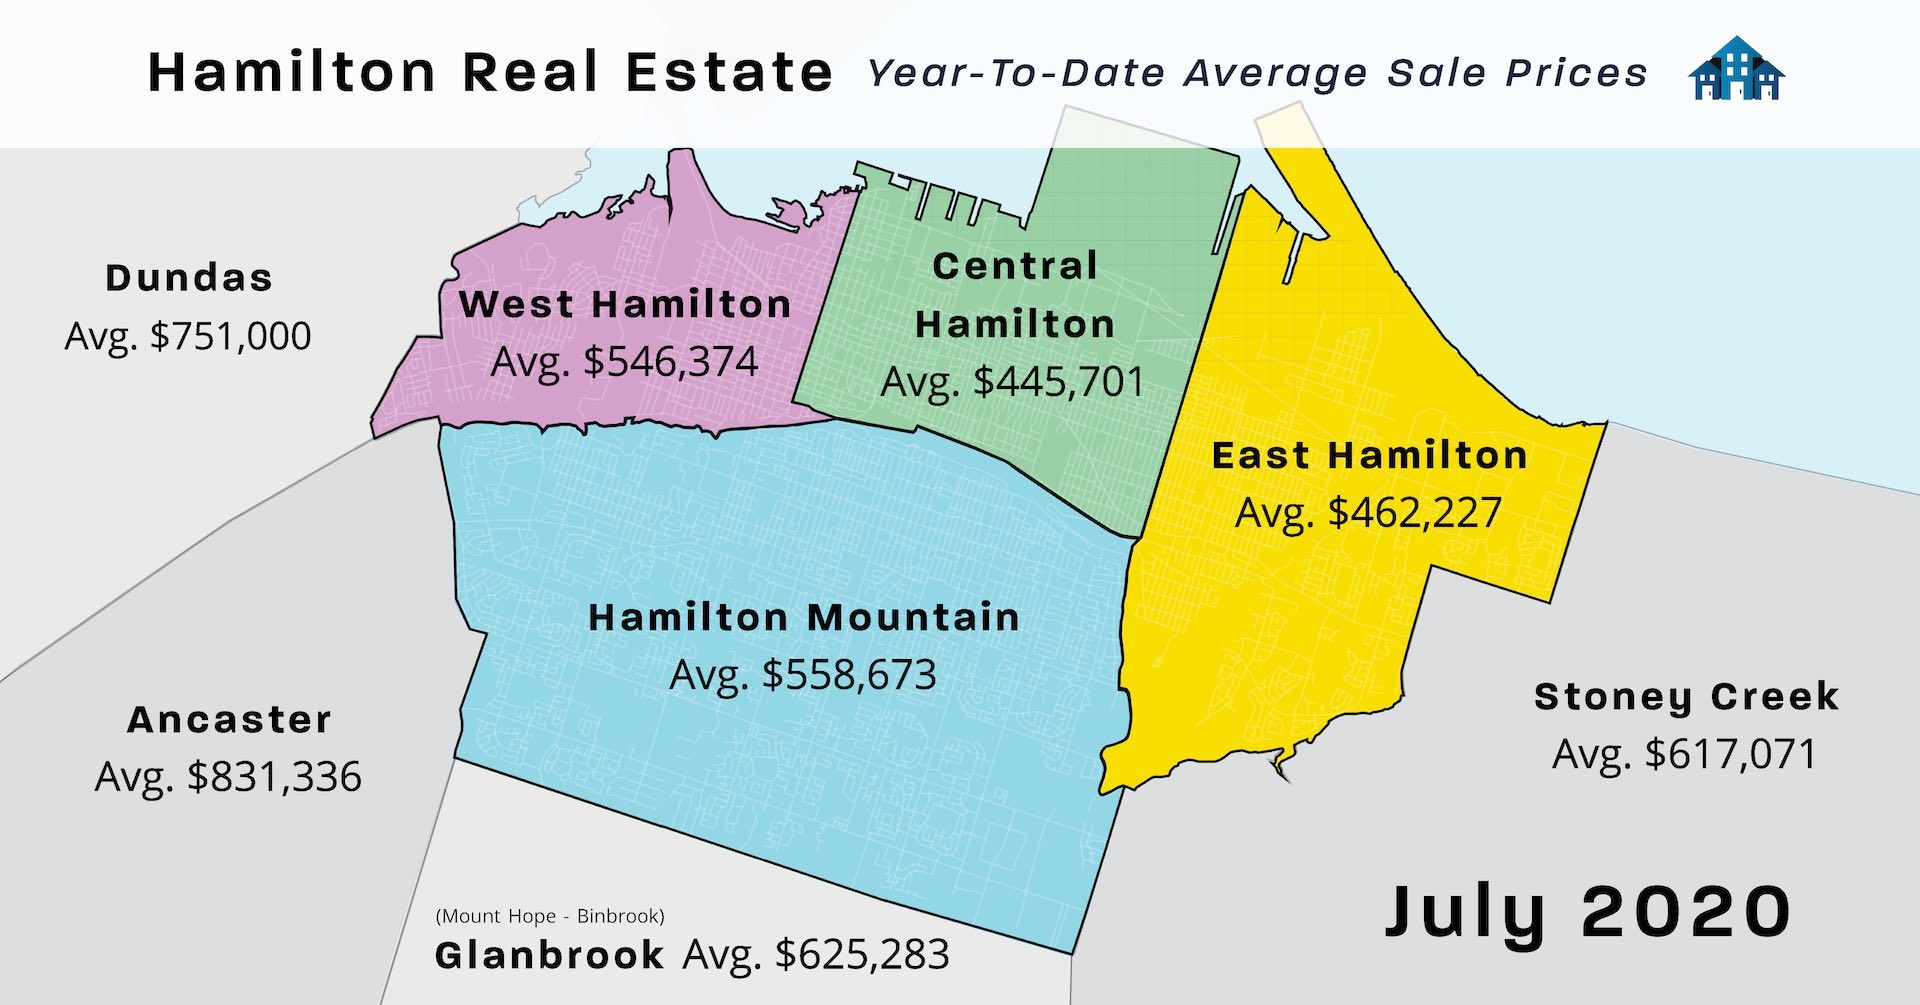 July 2020 Hamilton Real Estate Year to Date Sale Statistics